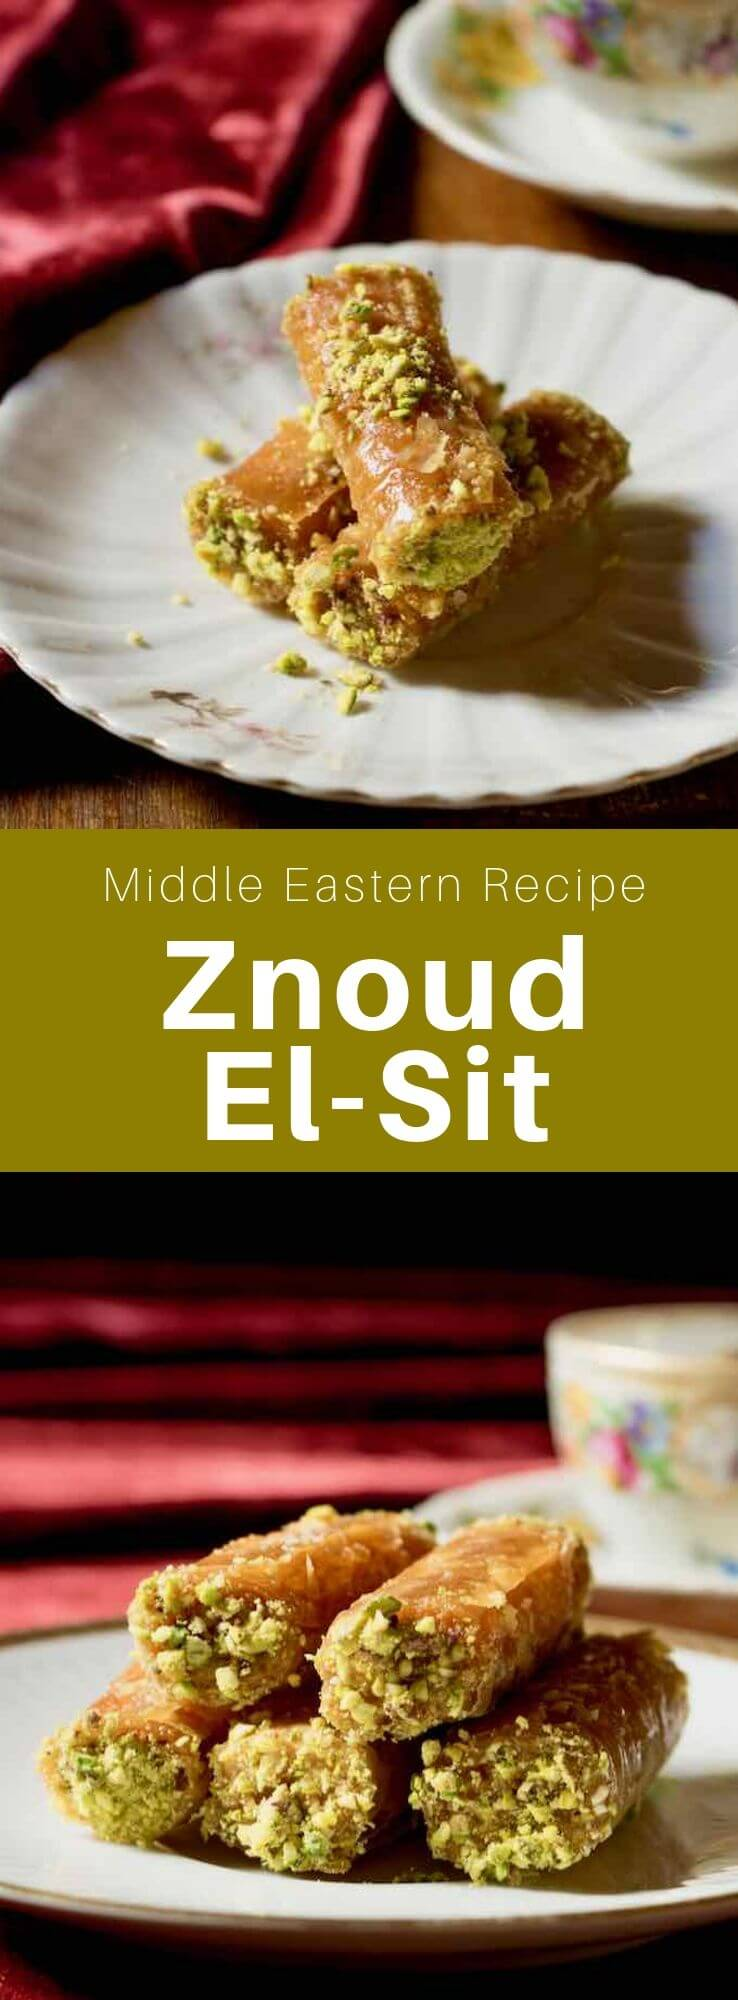 Znoud el-sit (ladies' upper arm) is a popular Middle Eastern cream-filled pastry made of phyllo dough, crunchy on the outside and creamy inside. #MiddleEast #MiddleEastern #Iraq #IraqiCuisine #IraqiRecipe #MiddleEastern #WorldCuisine #196flavors